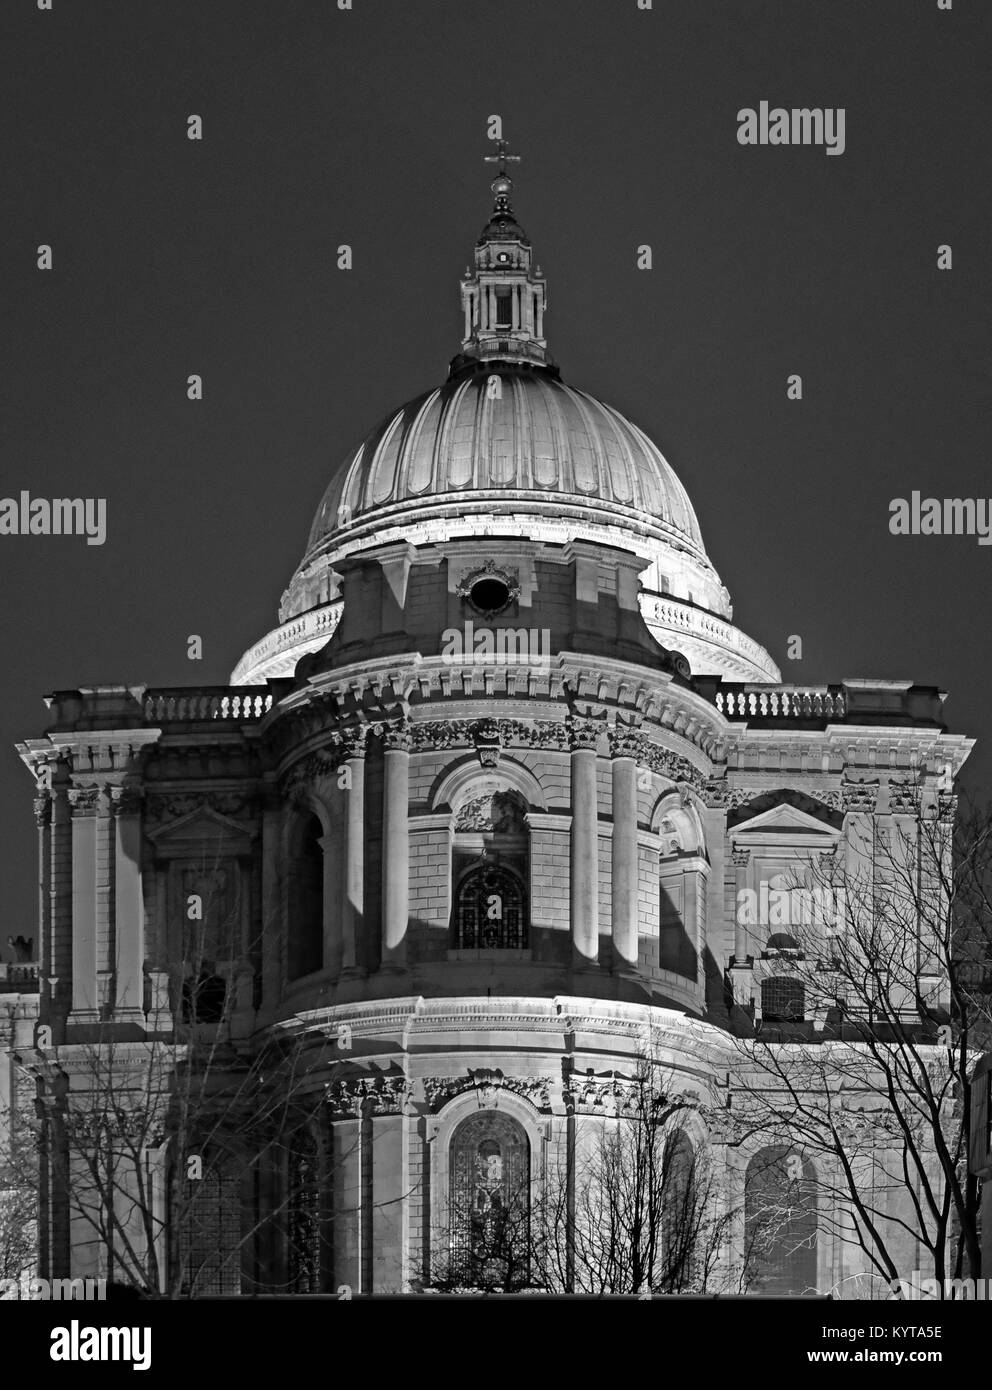 View of the dome of St Paul's Cathedral designed by Sir Christopher Wren. Dome is illuminated at night. Photo - Stock Image